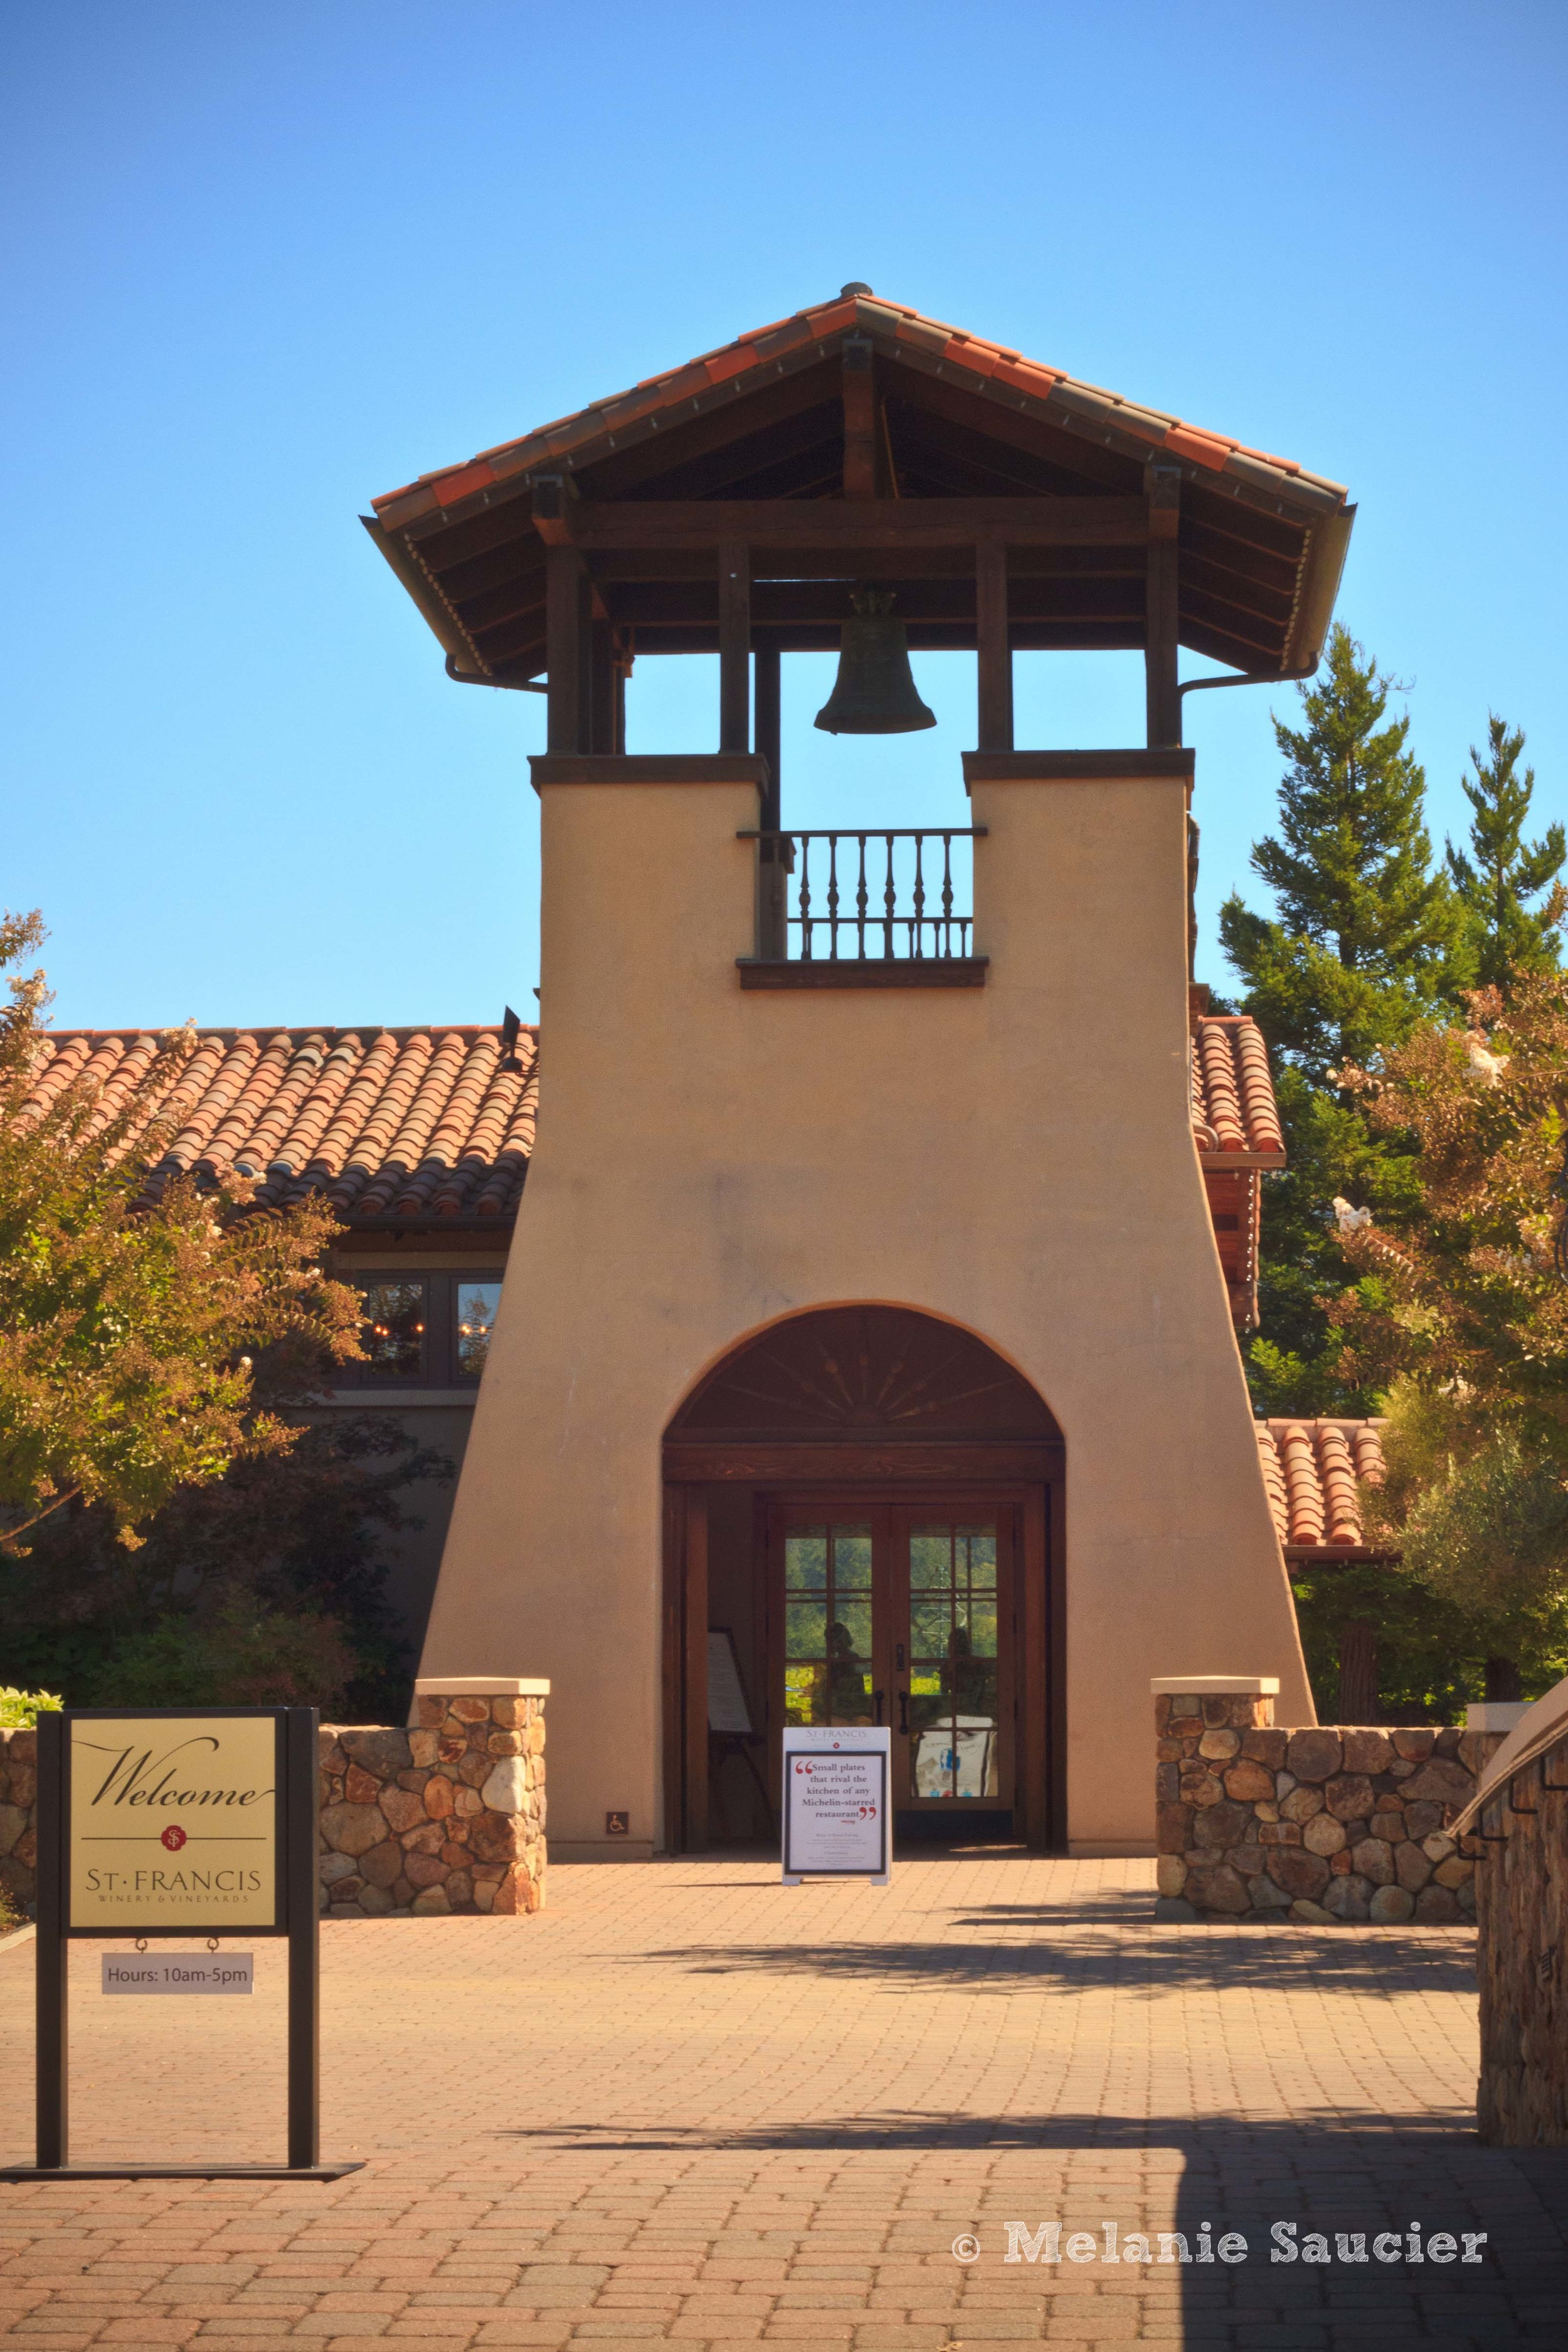 St-Francis Winery